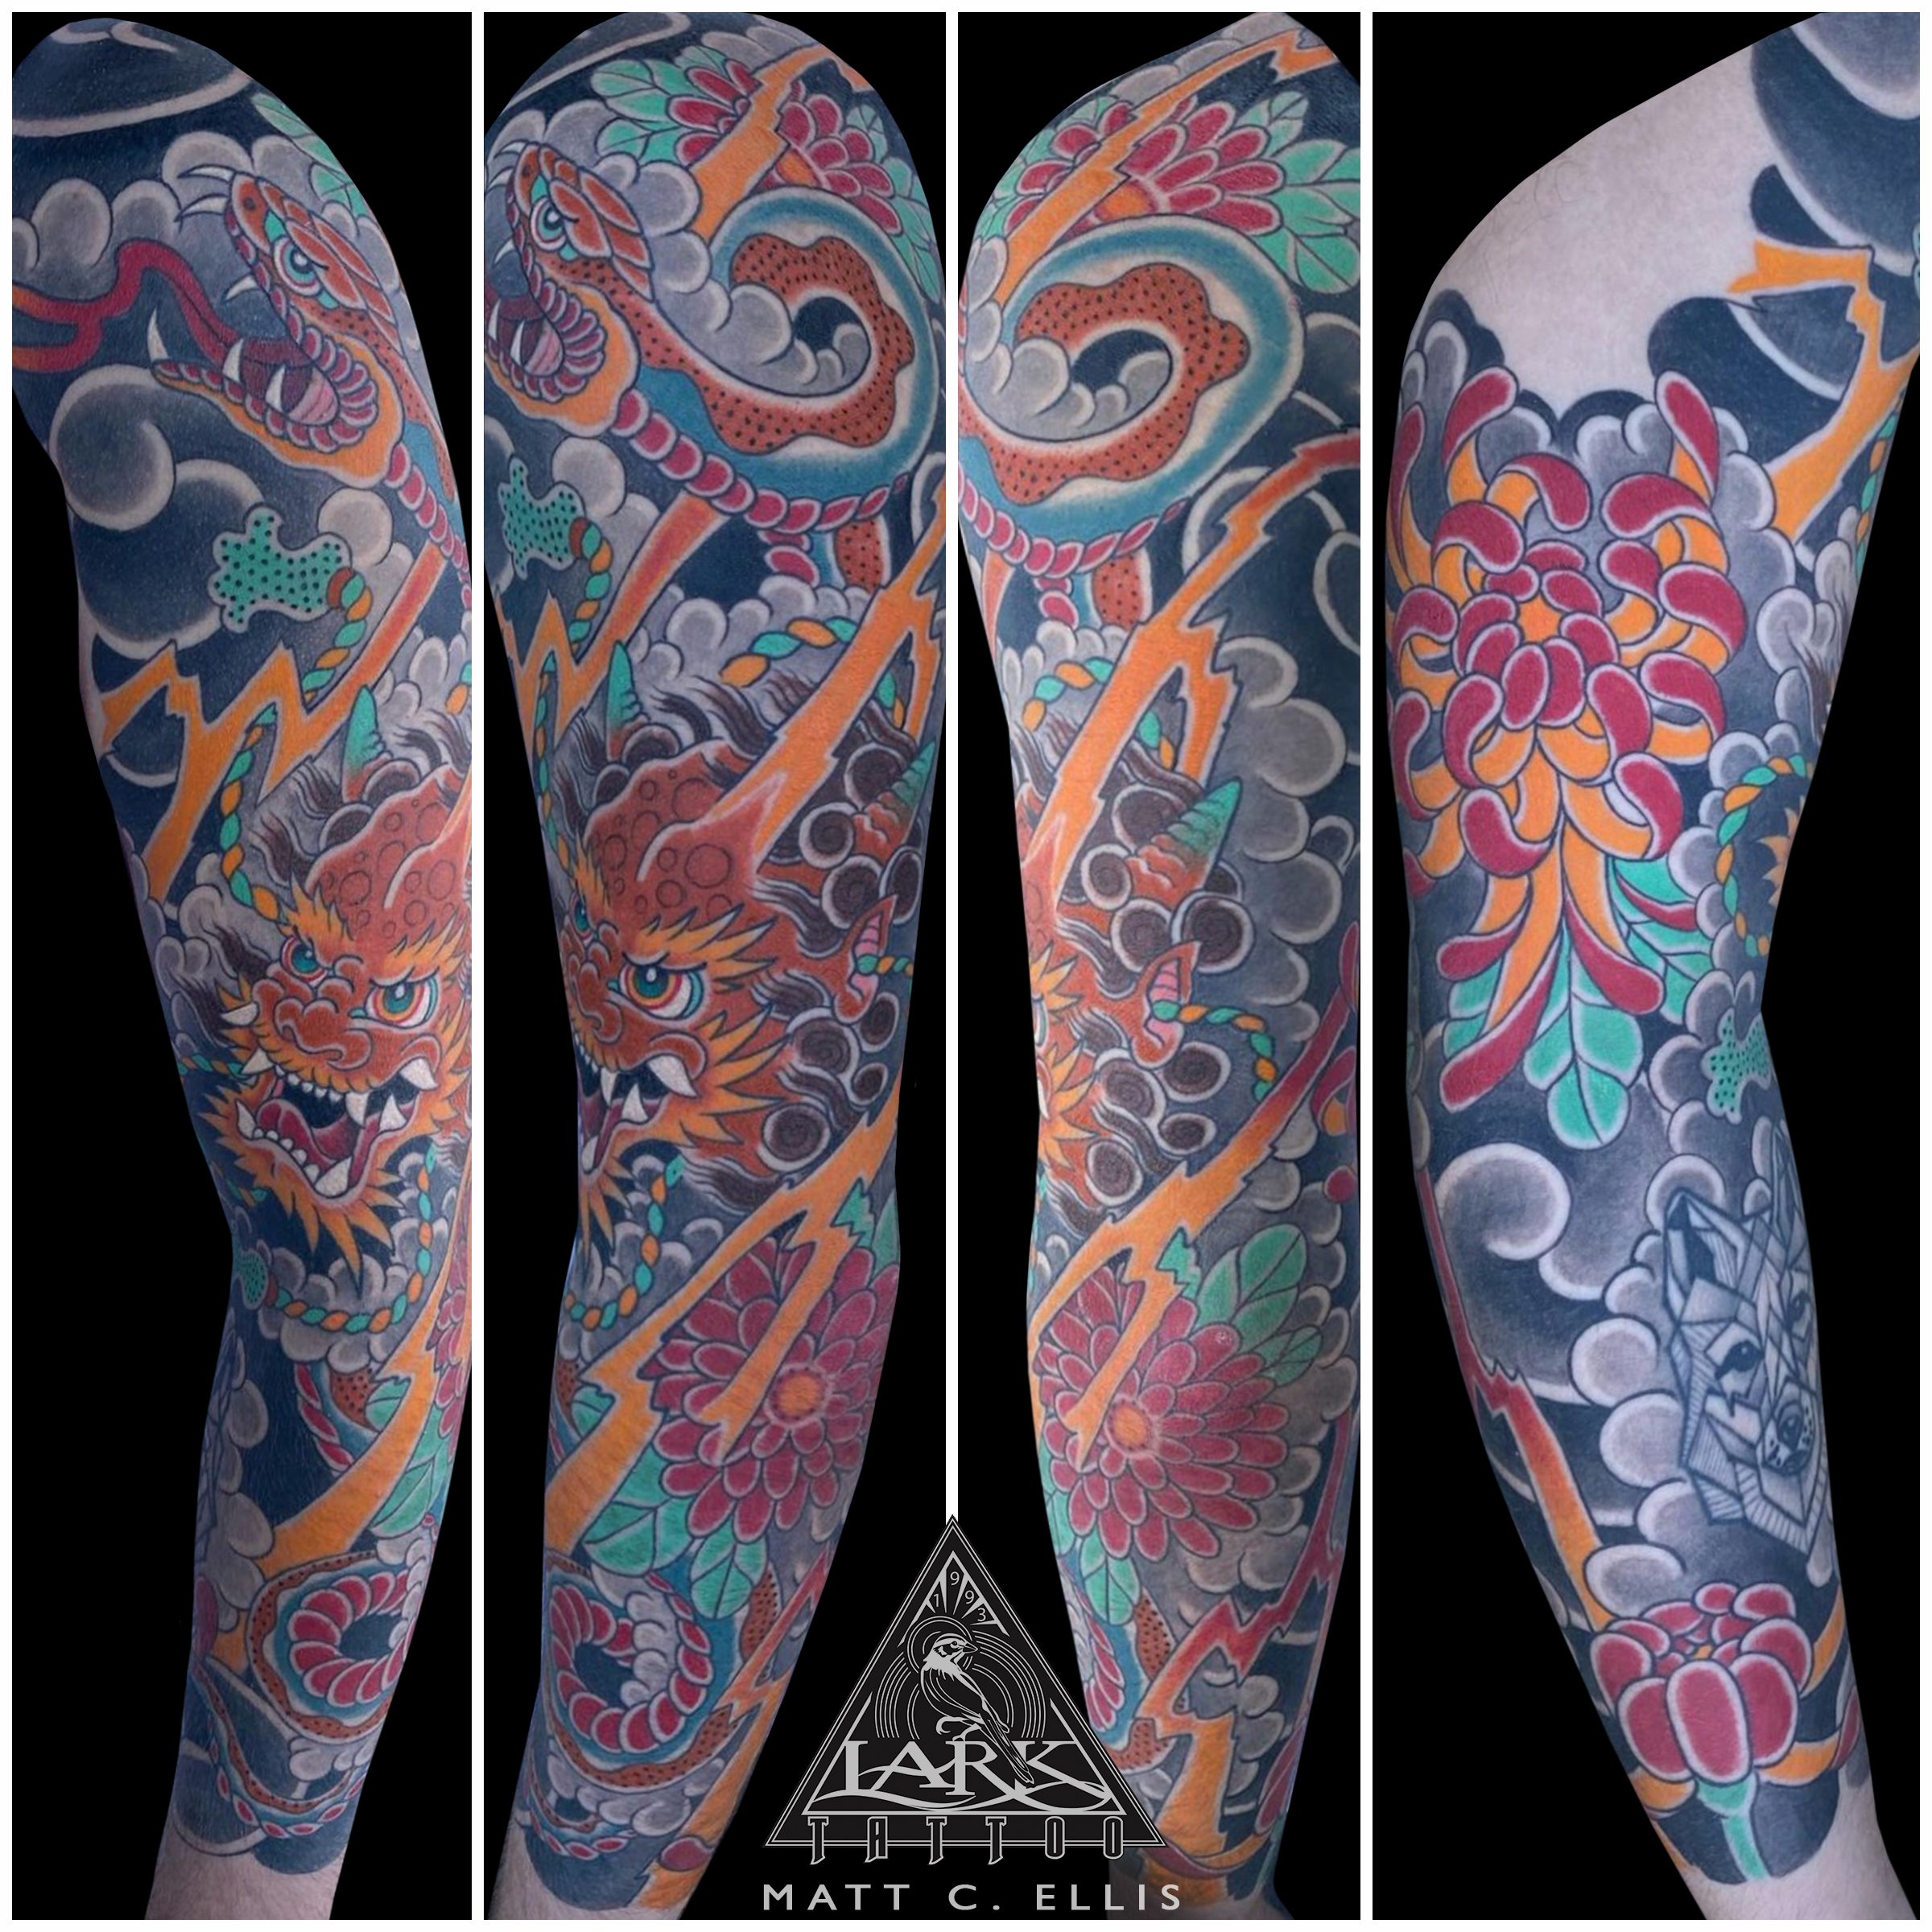 #LarkTattoo #MattEllis #MattEllisLarkTattoo #Tattoo #Tattoos #Japanese #JapaneseTattoo #JapaneseColorTattoo #ColorTattoo #Snake #SnakeTattoo #Dragon #DragonTattoo #JapaneseDragon #JapaneseDragonTattoo #JapaneseSnake #JapaneseSnakeTattoo #TattooSleeve #FullSleeveTattoo #LargeScaleTattoo #ArmTattoo #Chrysanthemum #ChrysanthemumTattoo #JapaneseFlower #JapaneseFlowerTattoo #TattooArtist #Tattoist #Tattooer #LongIslandTattooArtist #LongIslandTattooer #LongIslandTattoo #TattooOfTheDay #Tat #Tats #Tatts #Tatted #Inked #Ink #TattooInk #AmazingInk #AmazingTattoo #BodyArt #LarkTattooWestbury #Westbury #LongIsland #NY #NewYork #USA #Art #Tattedup #InkedUp #LarkTattoos